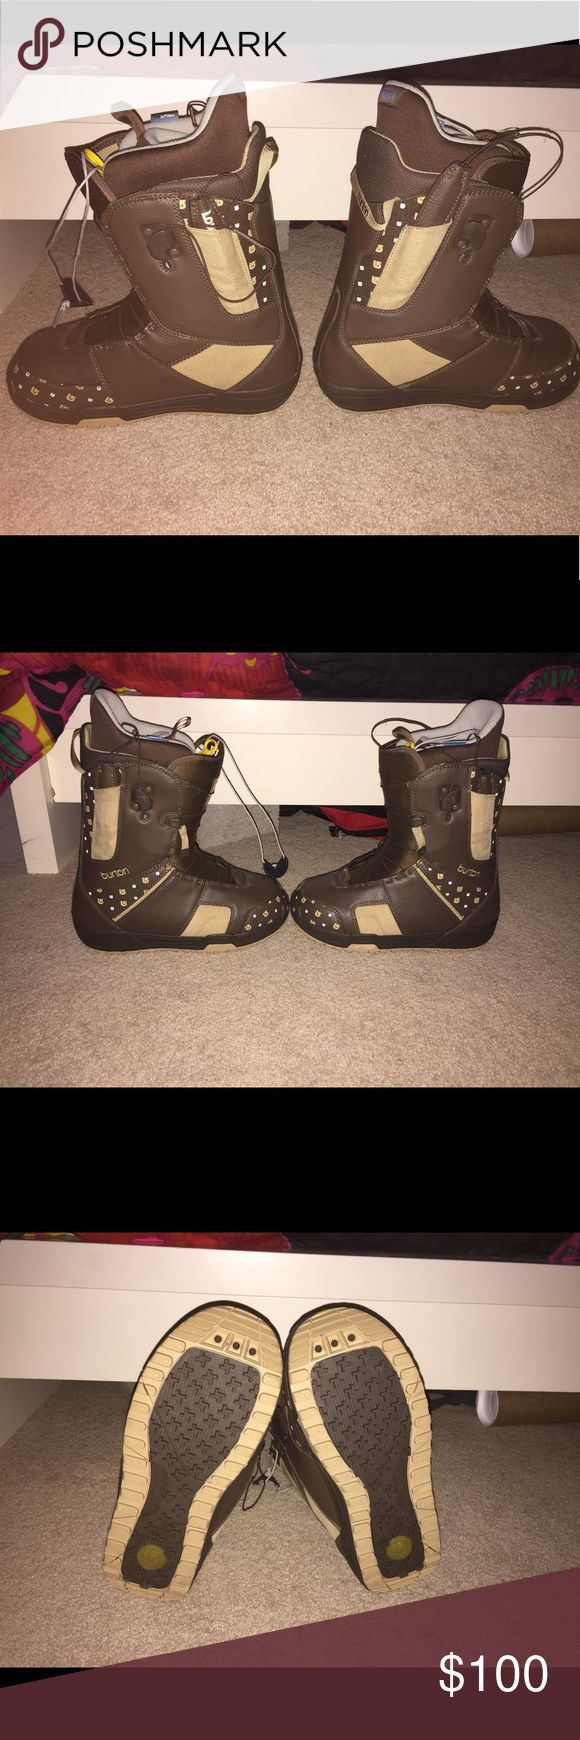 Burton women's snowboard boots Brown women's snowboard boots. Burton brand. Worn once and were too small for my feet. Pull tie technology with no lacing or tying required. They are awesome boots I wish they fit me. Burton Shoes Winter & Rain Boots